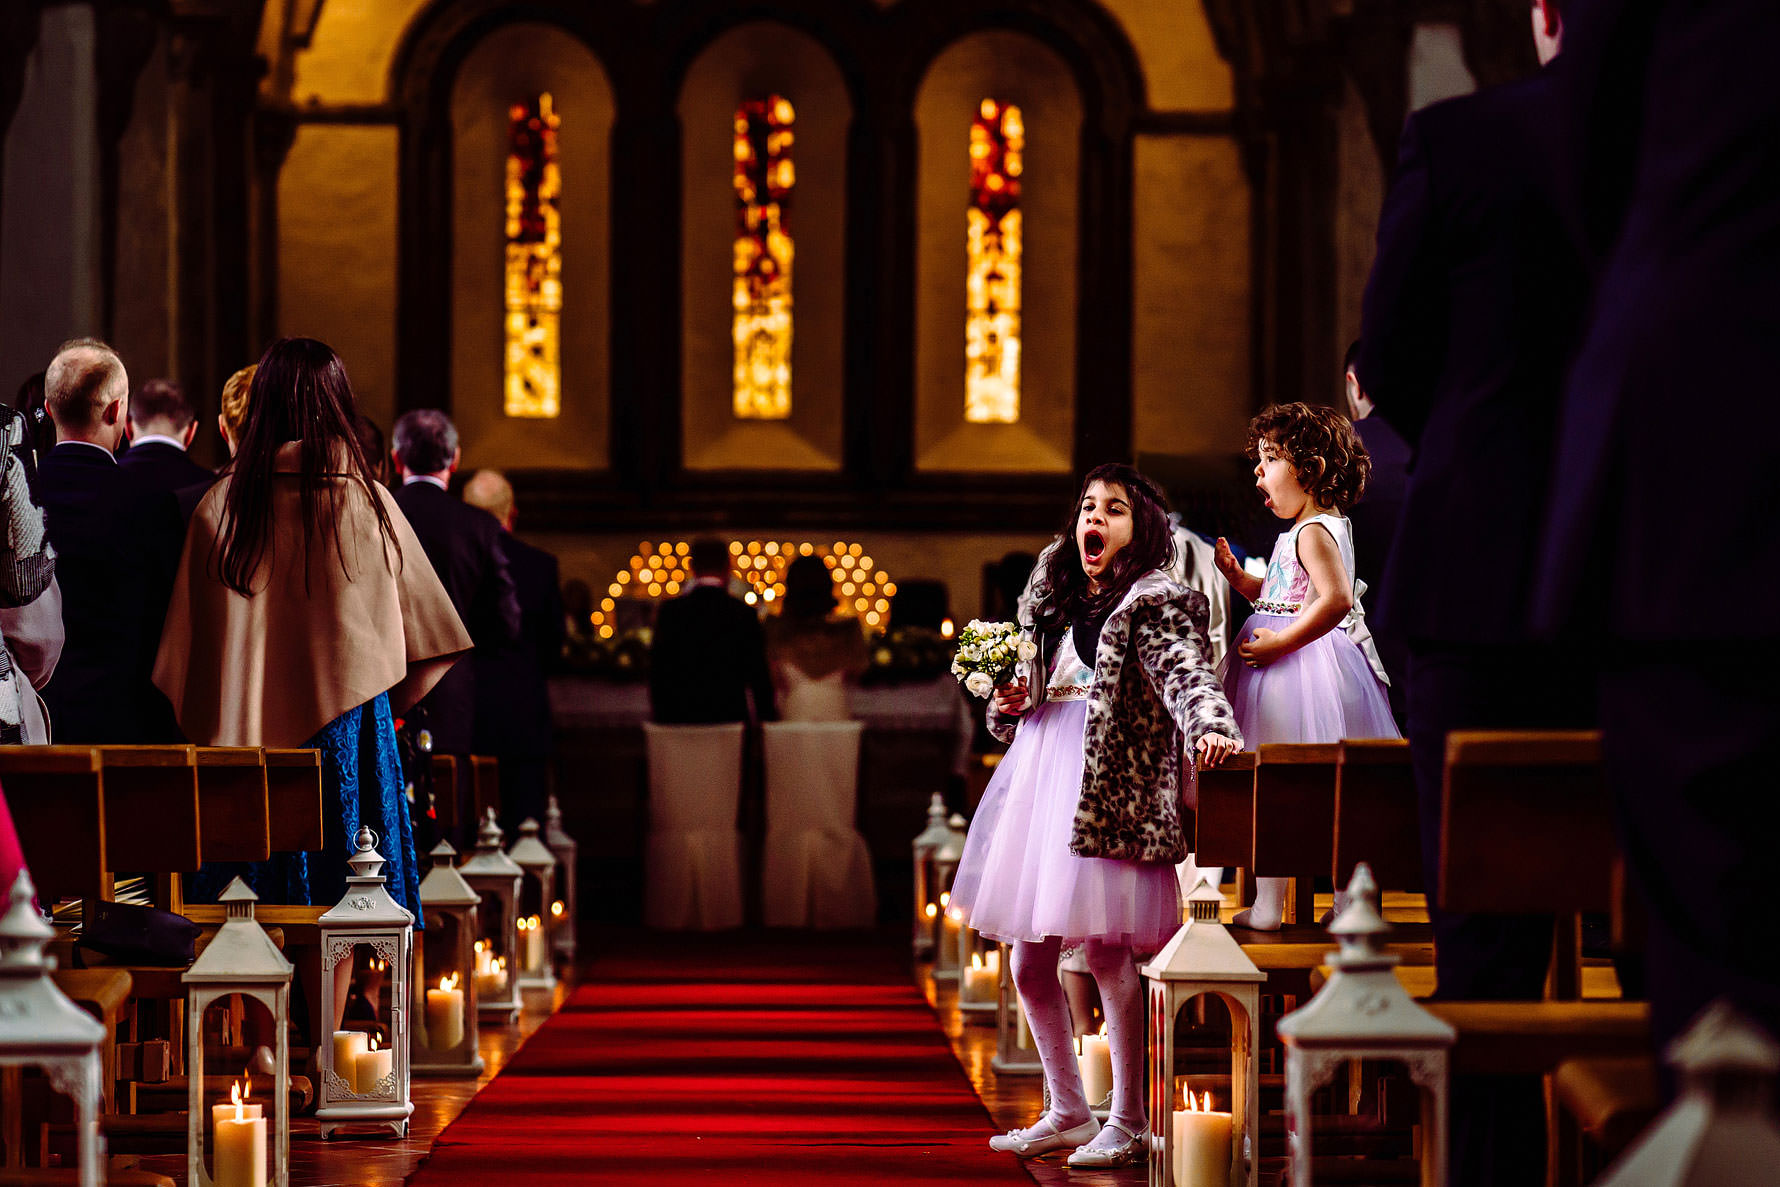 reportage wedding photography at ballintubber abbey